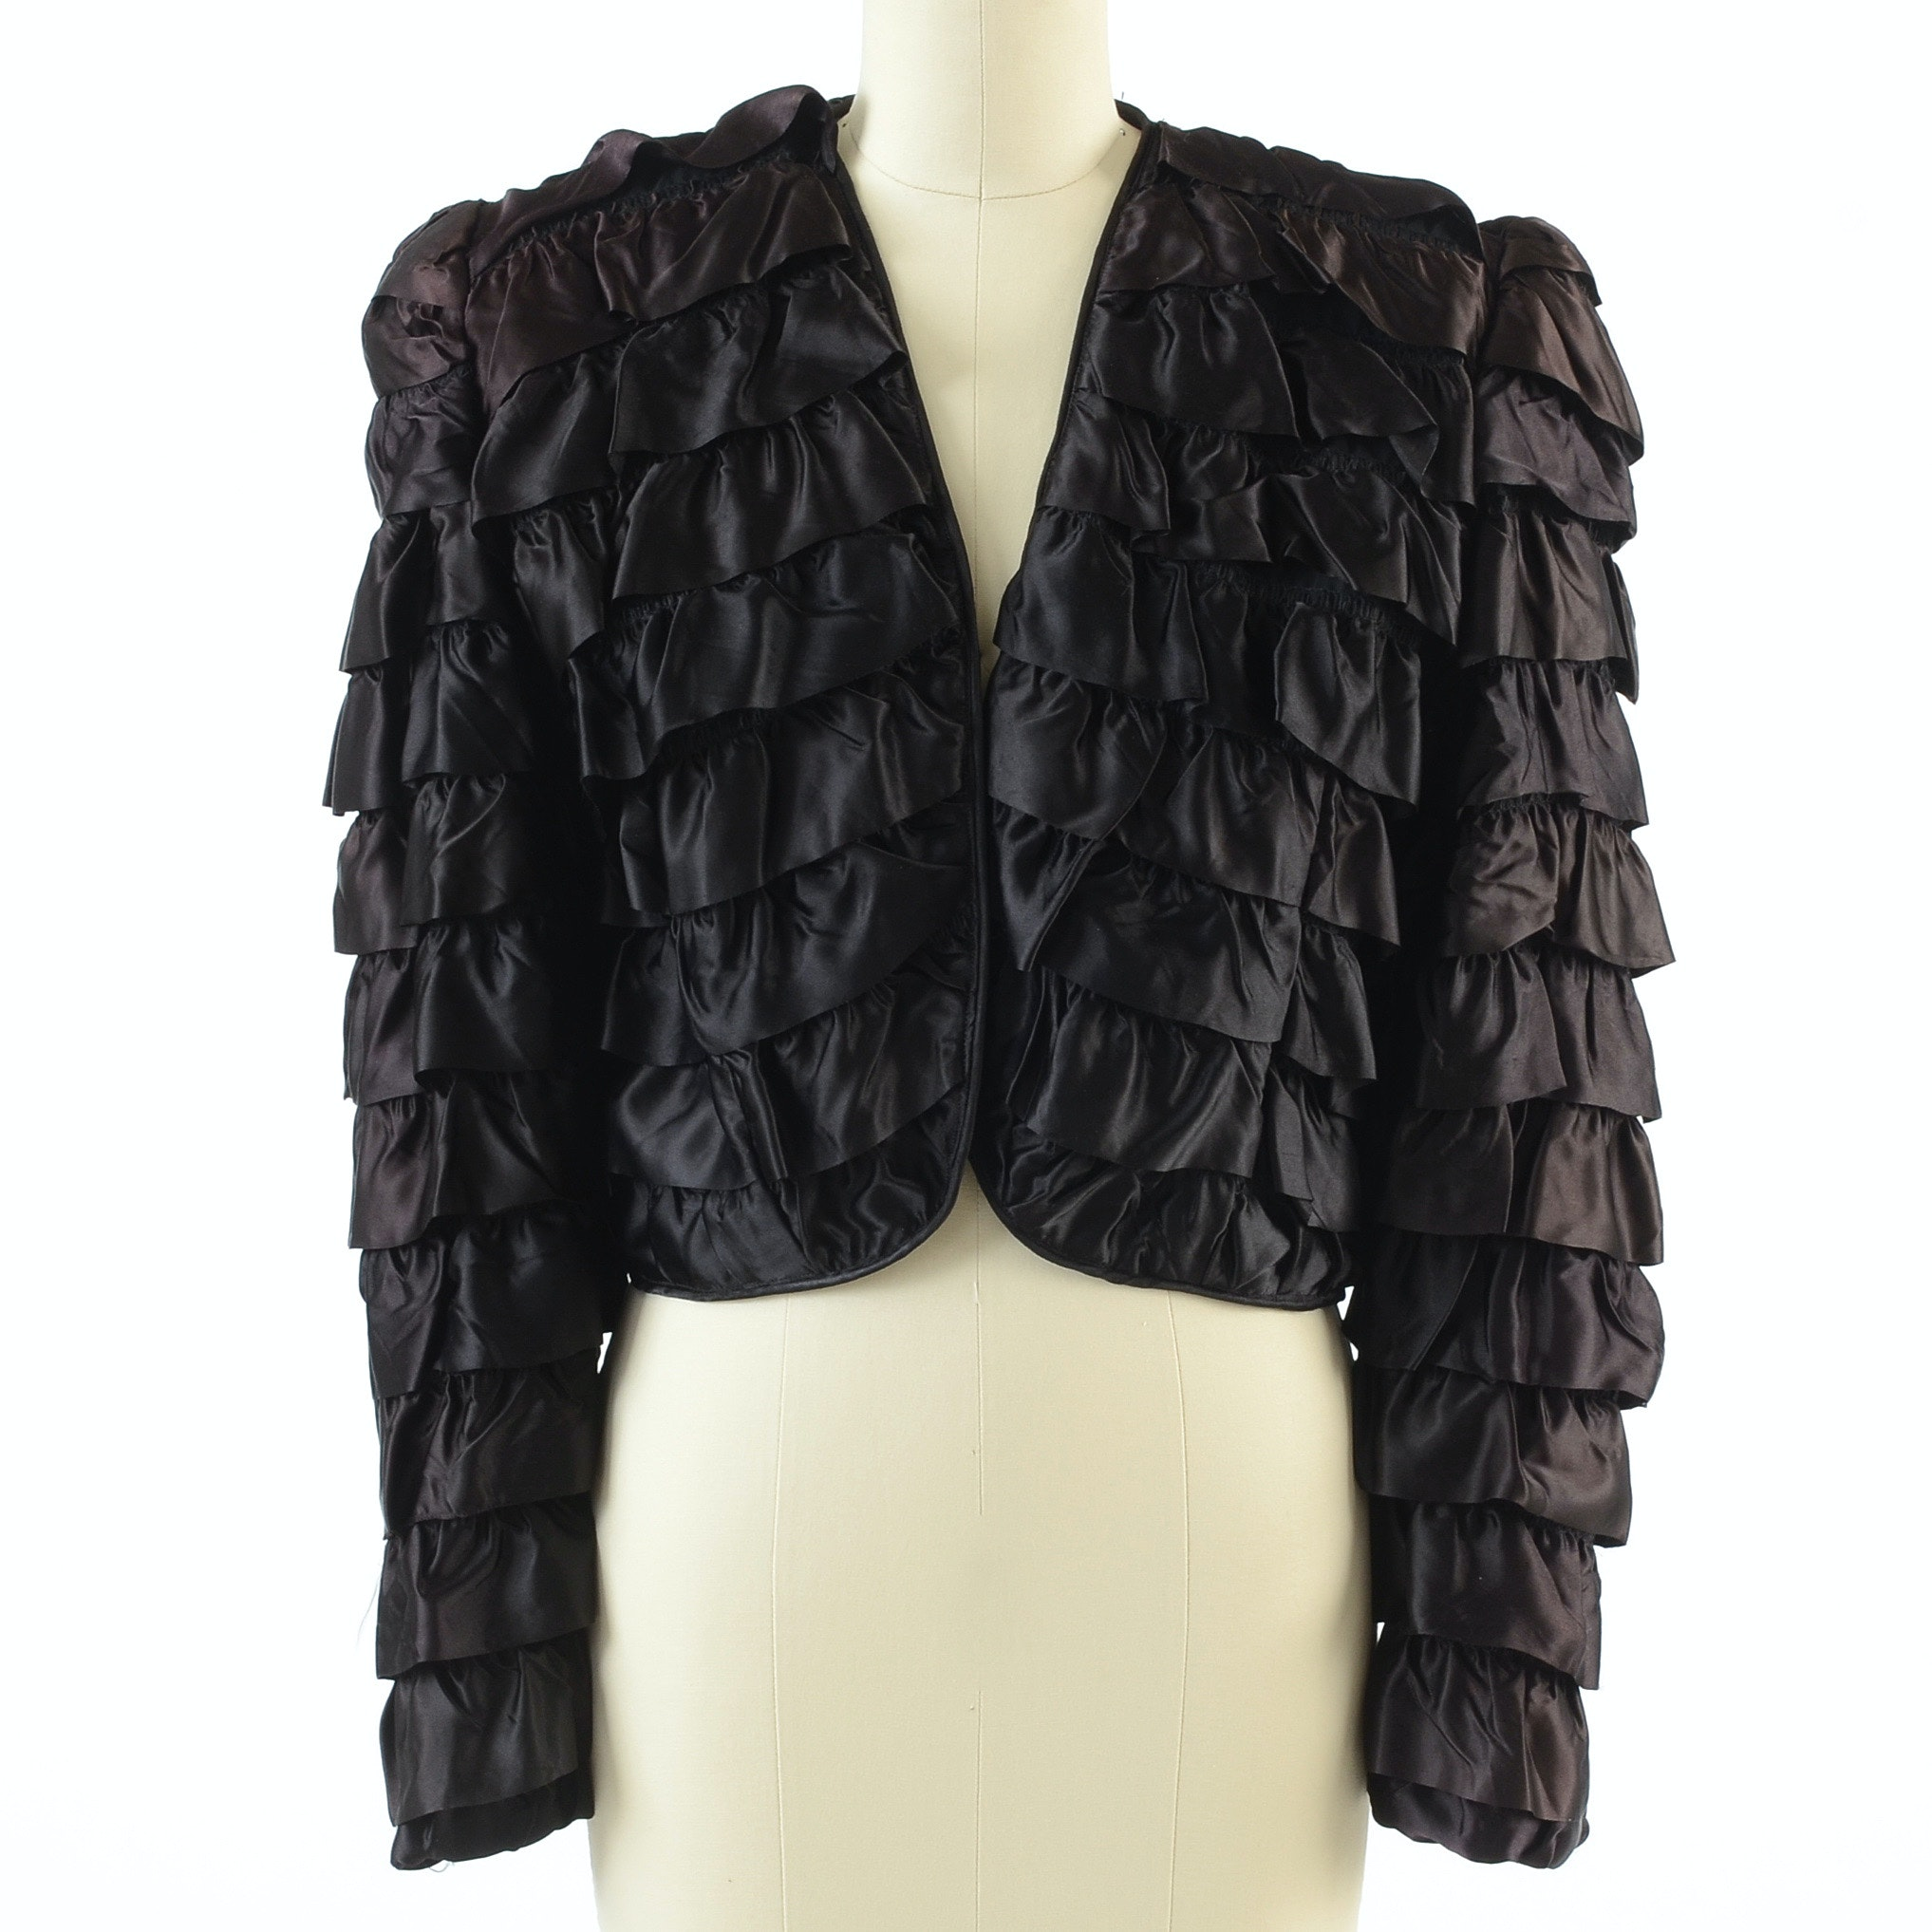 Vintage C. M. Lafra of New York Couture Black Silk Ruffled Crop Jacket